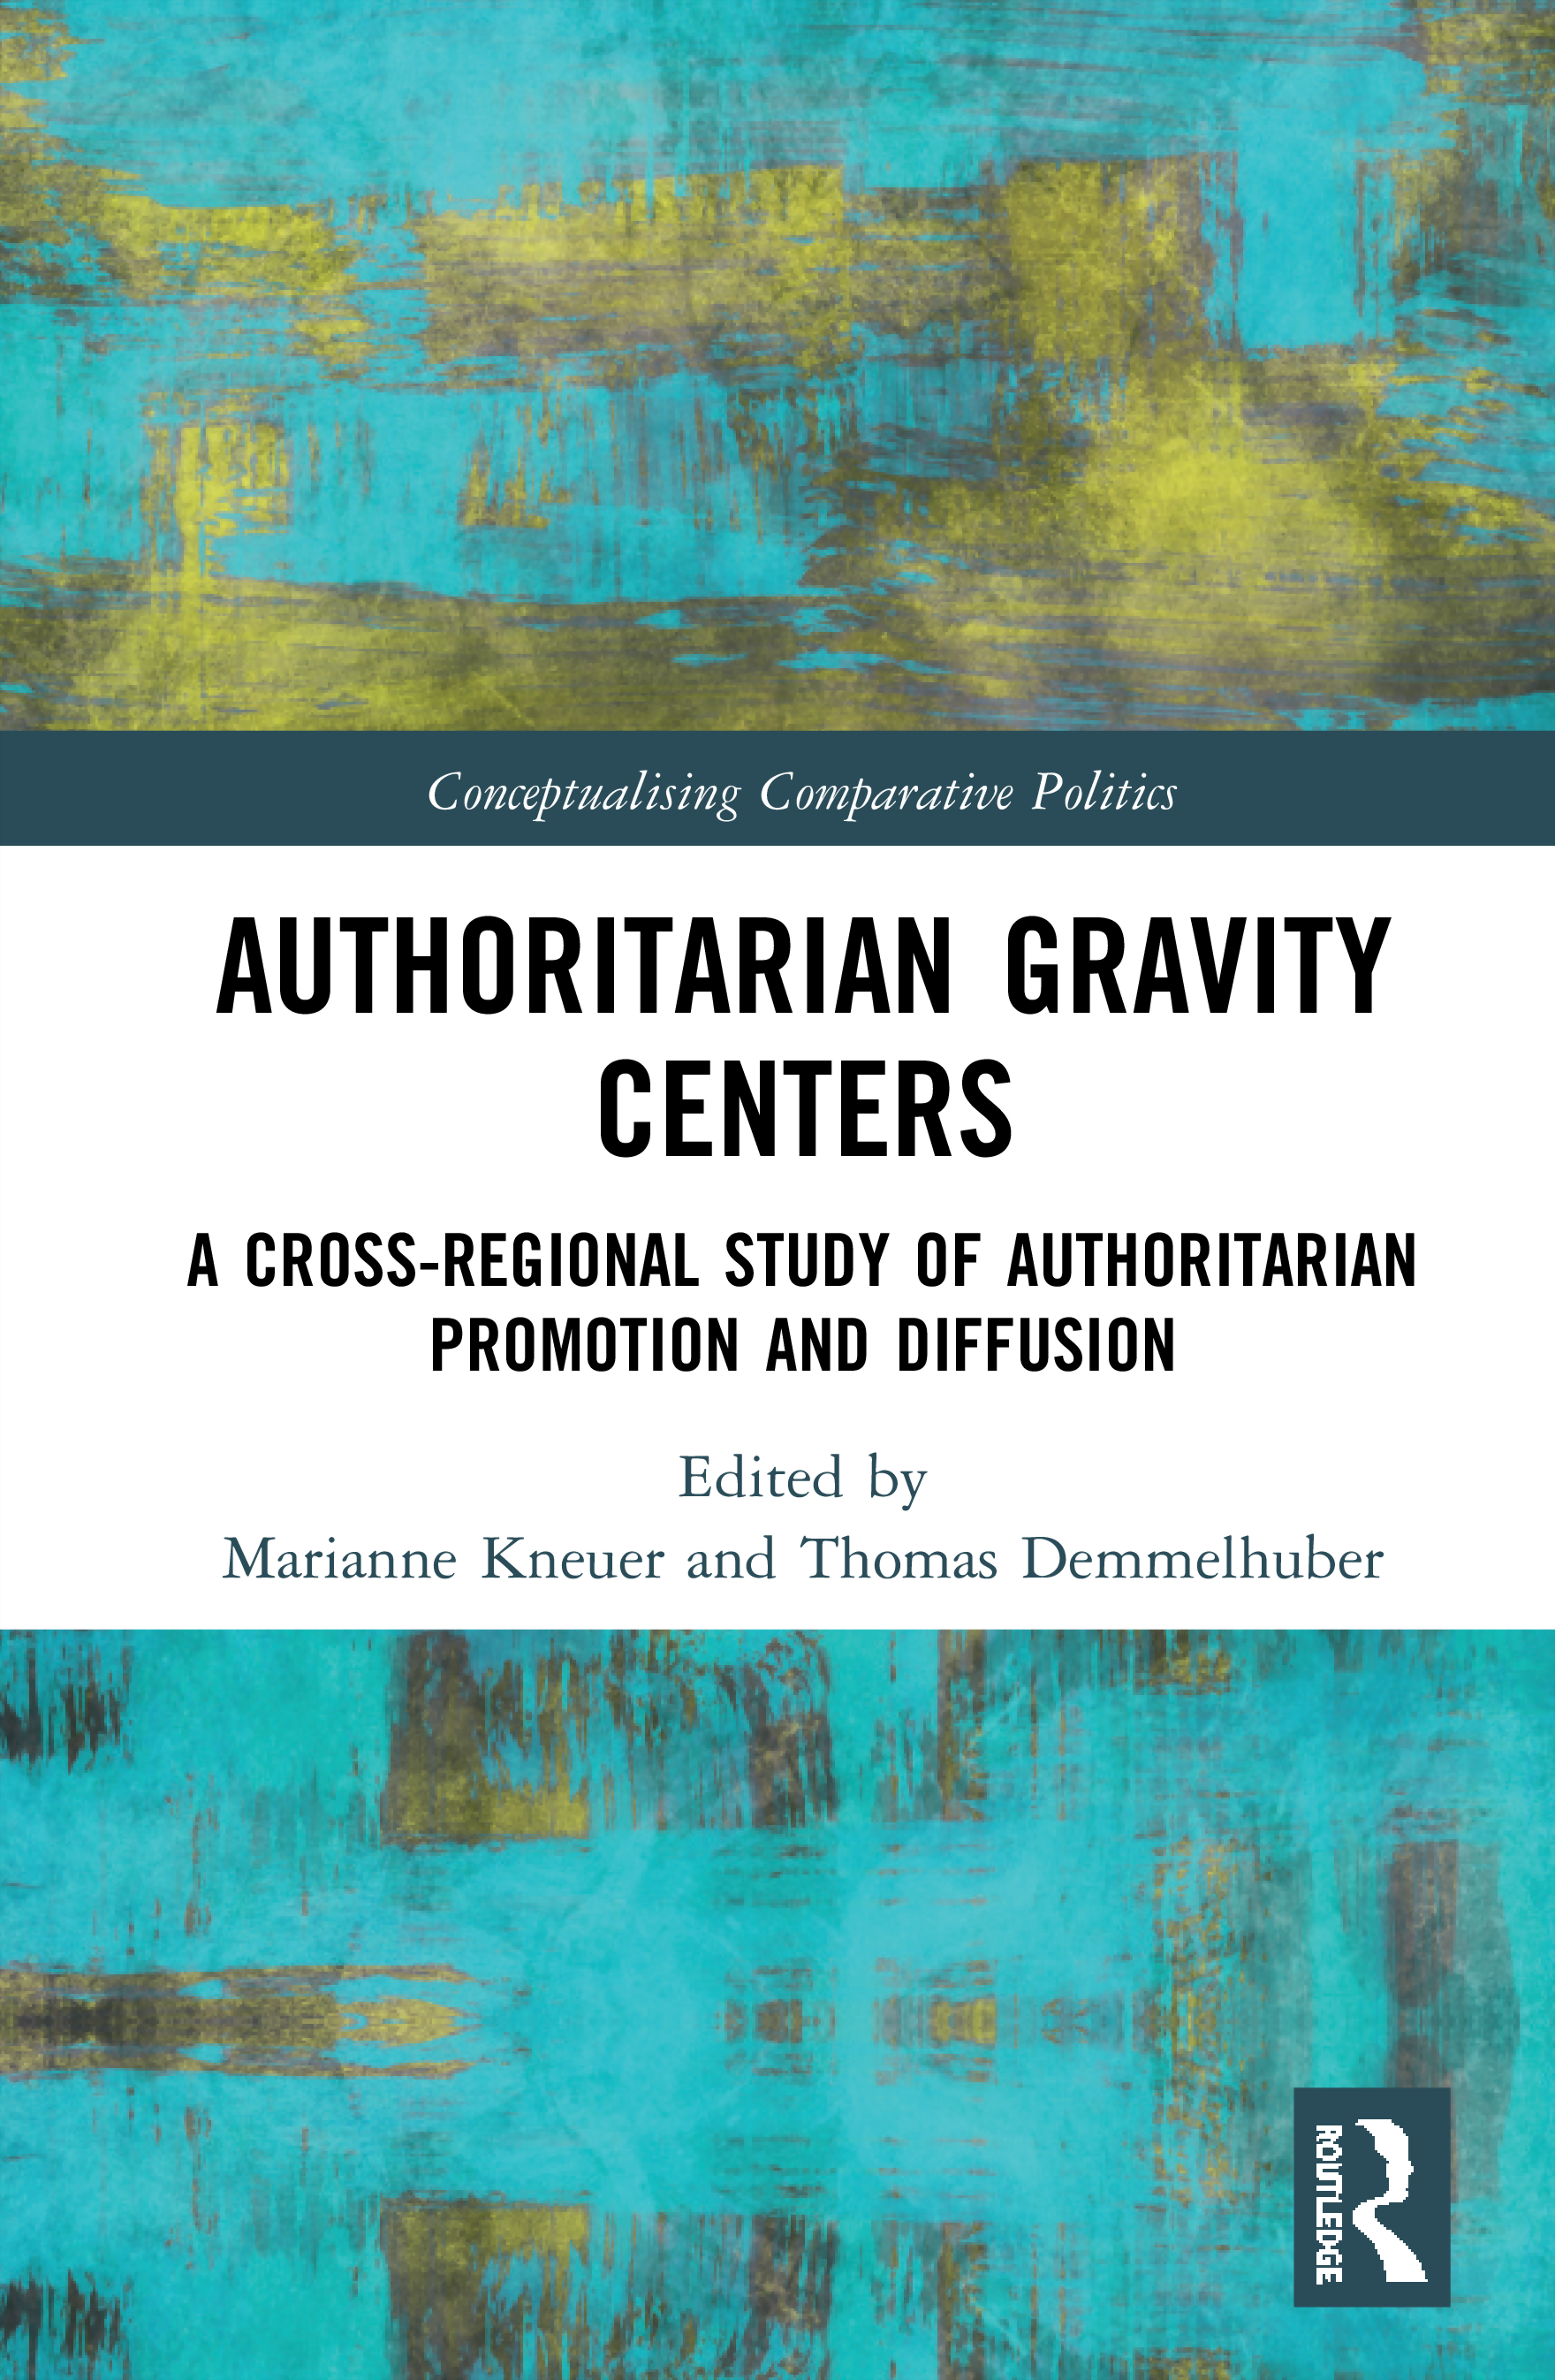 Authoritarian Gravity Centers: A Cross-Regional Study of Authoritarian Promotion and Diffusion, 1st Edition (Hardback) book cover